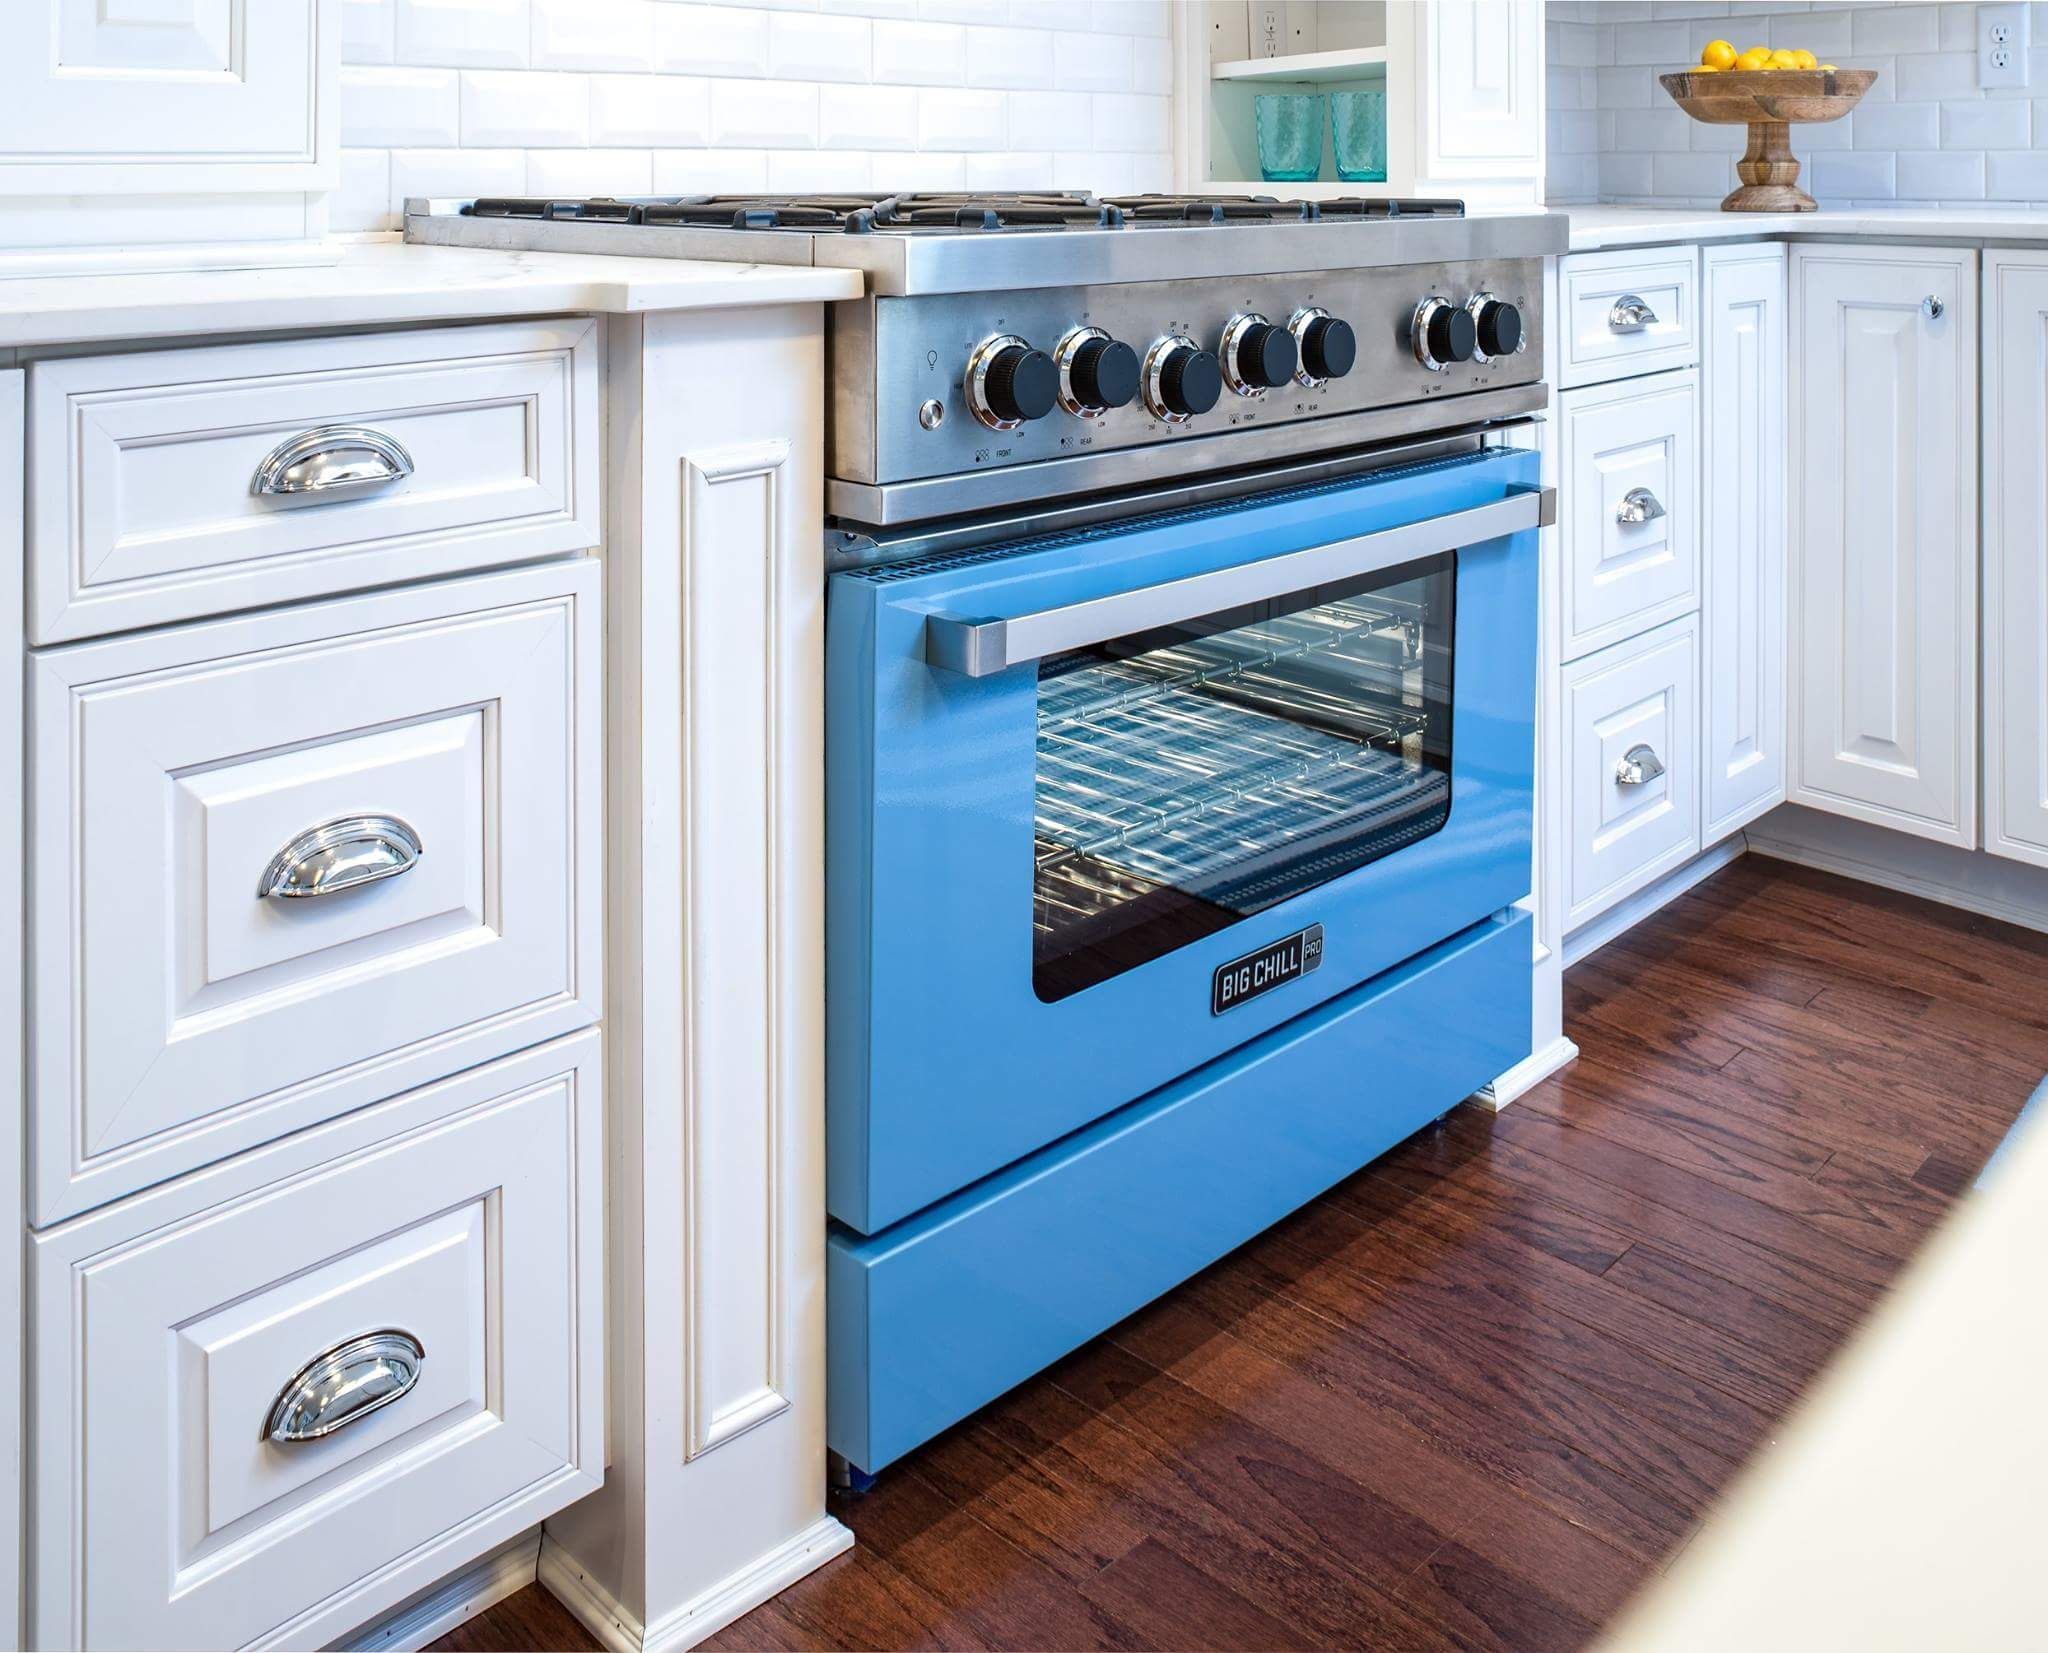 Big Chill Appliances | home | Pinterest | Big chill, Kitchens and House